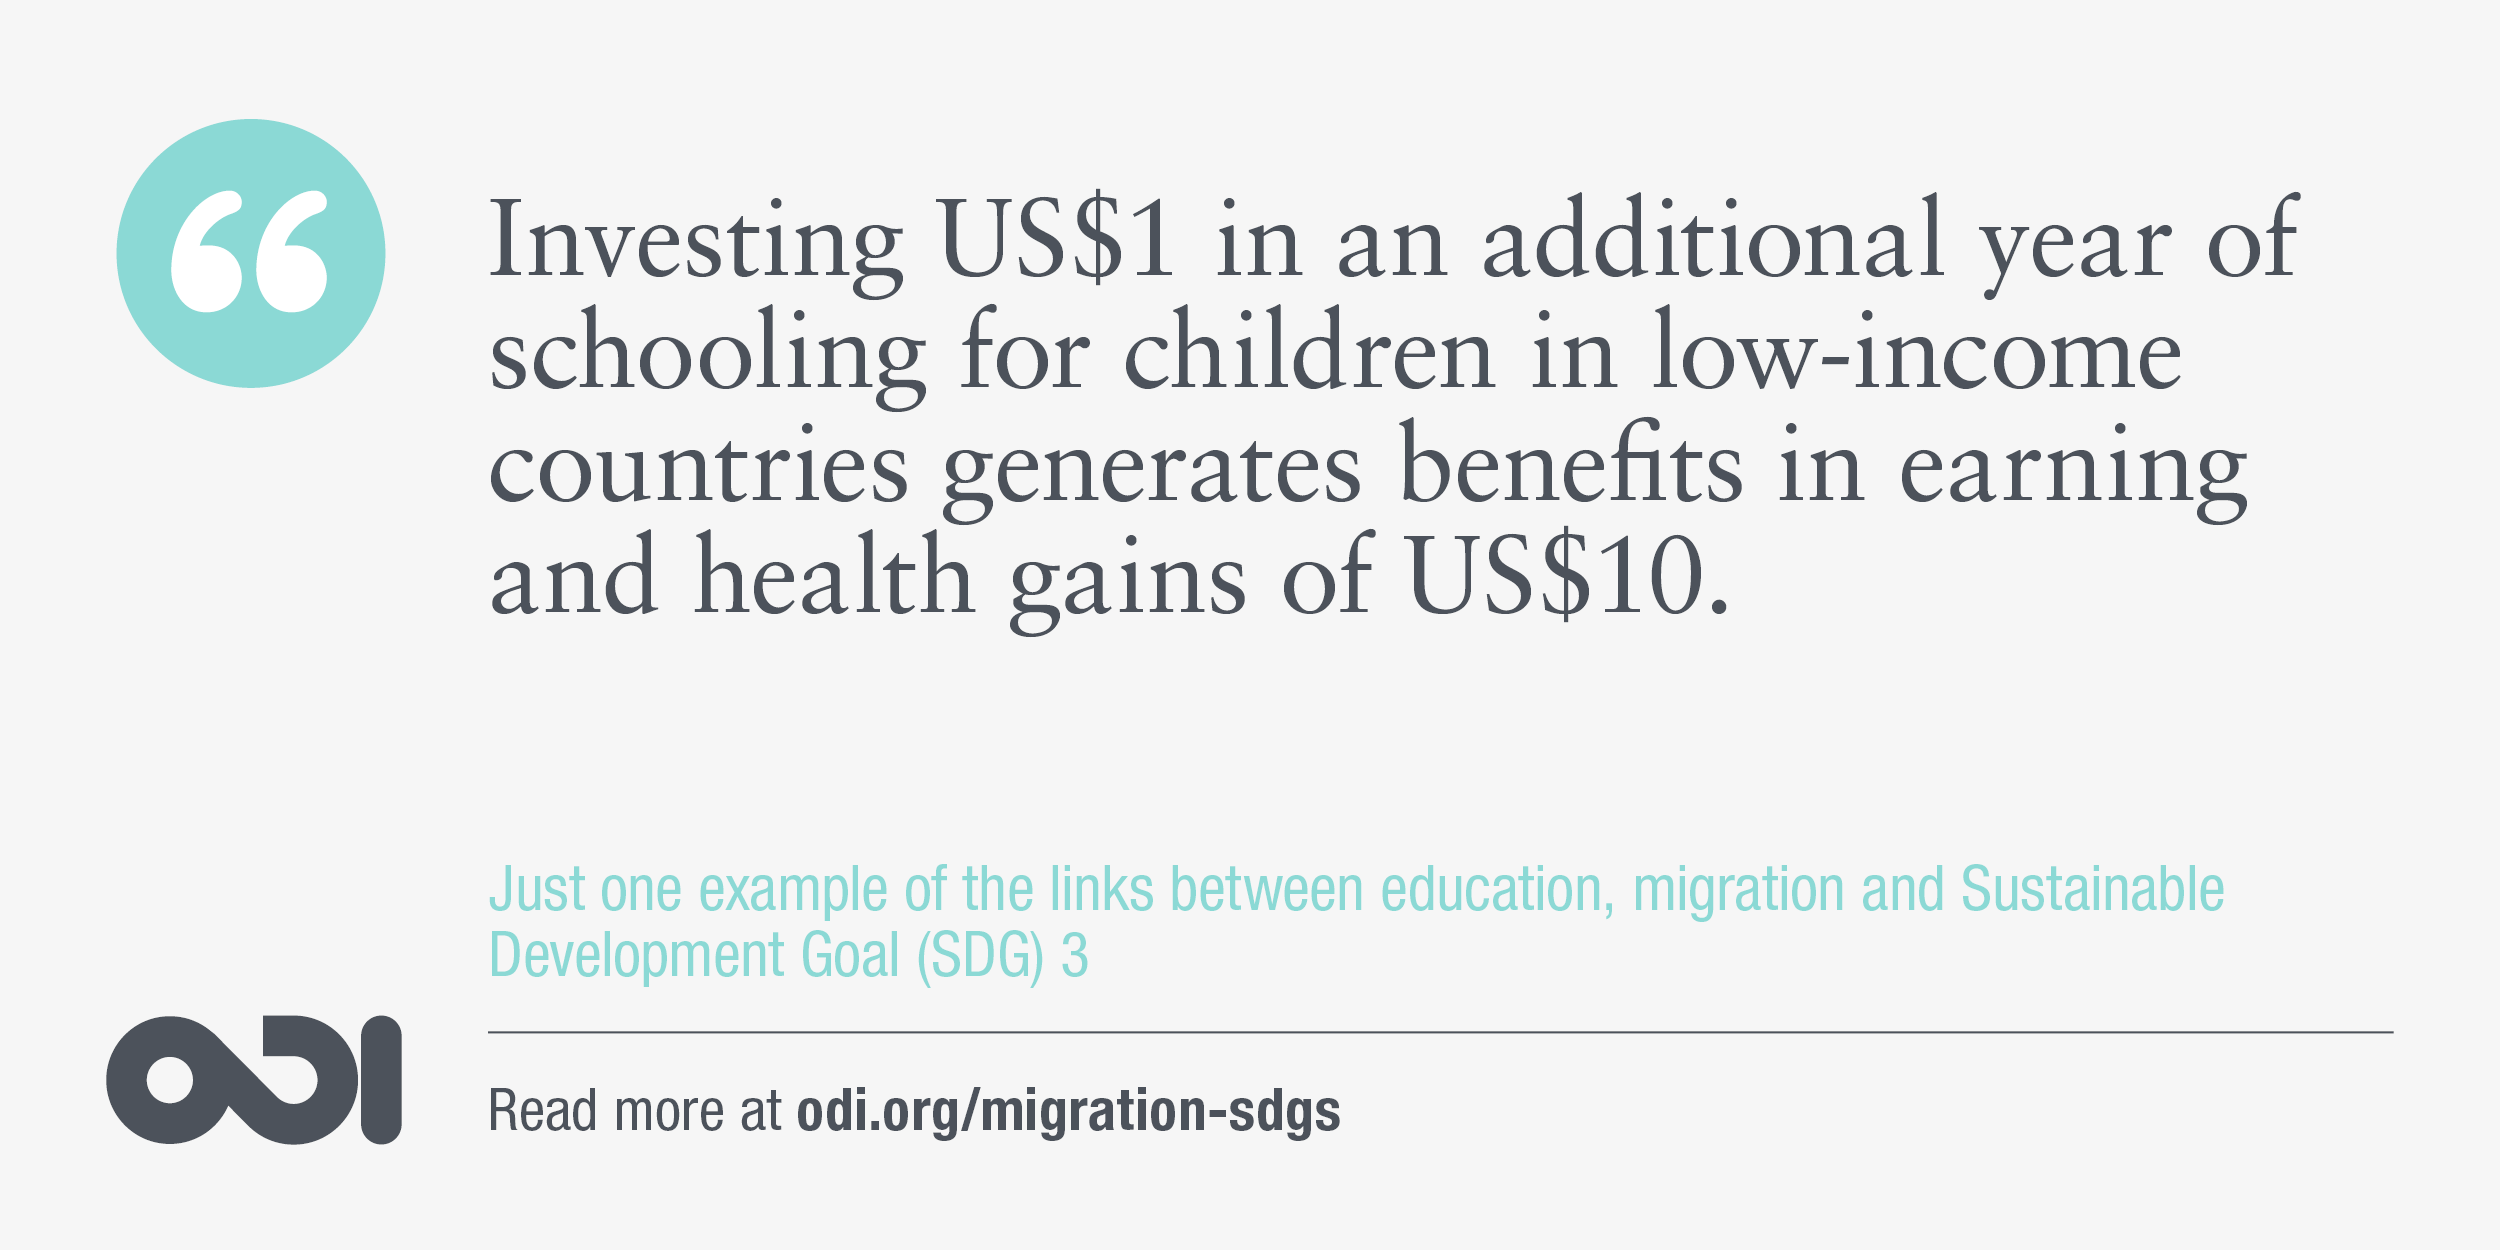 The links between education, migration and SDG 3.